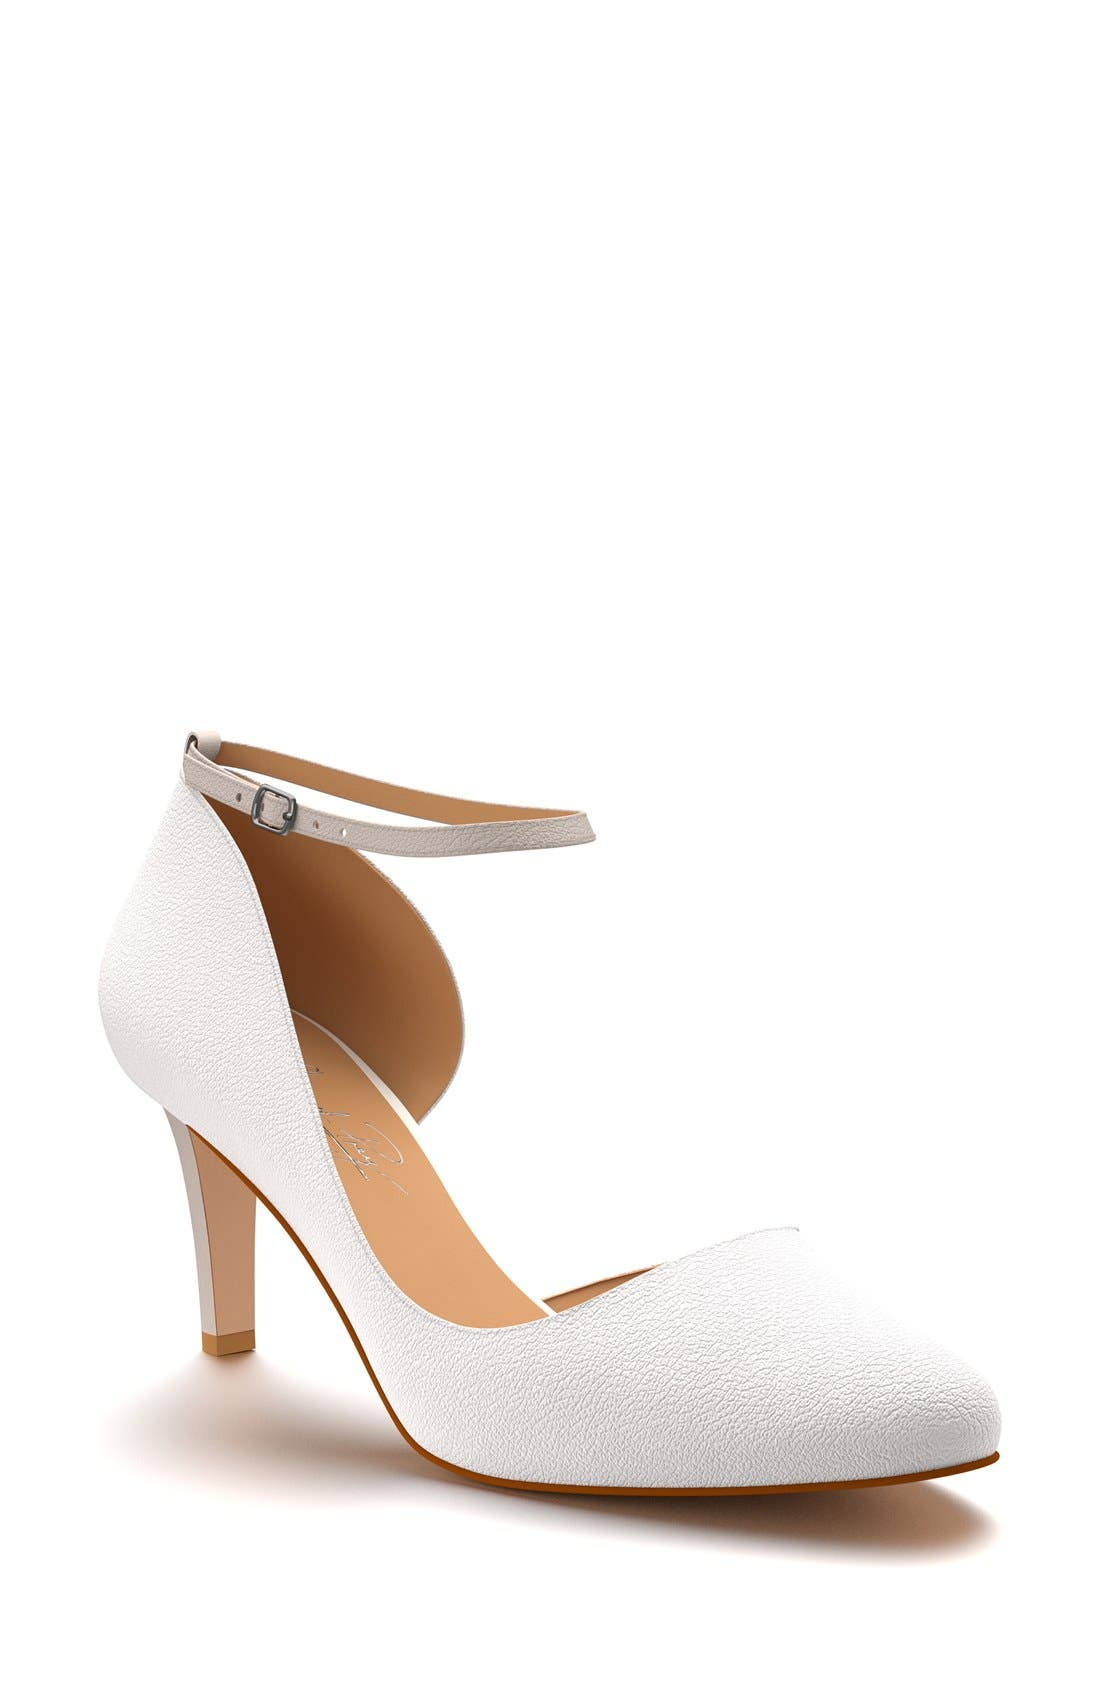 Alternate Image 1 Selected - Shoes of Prey Half d'Orsay Ankle Strap Pump (Women)